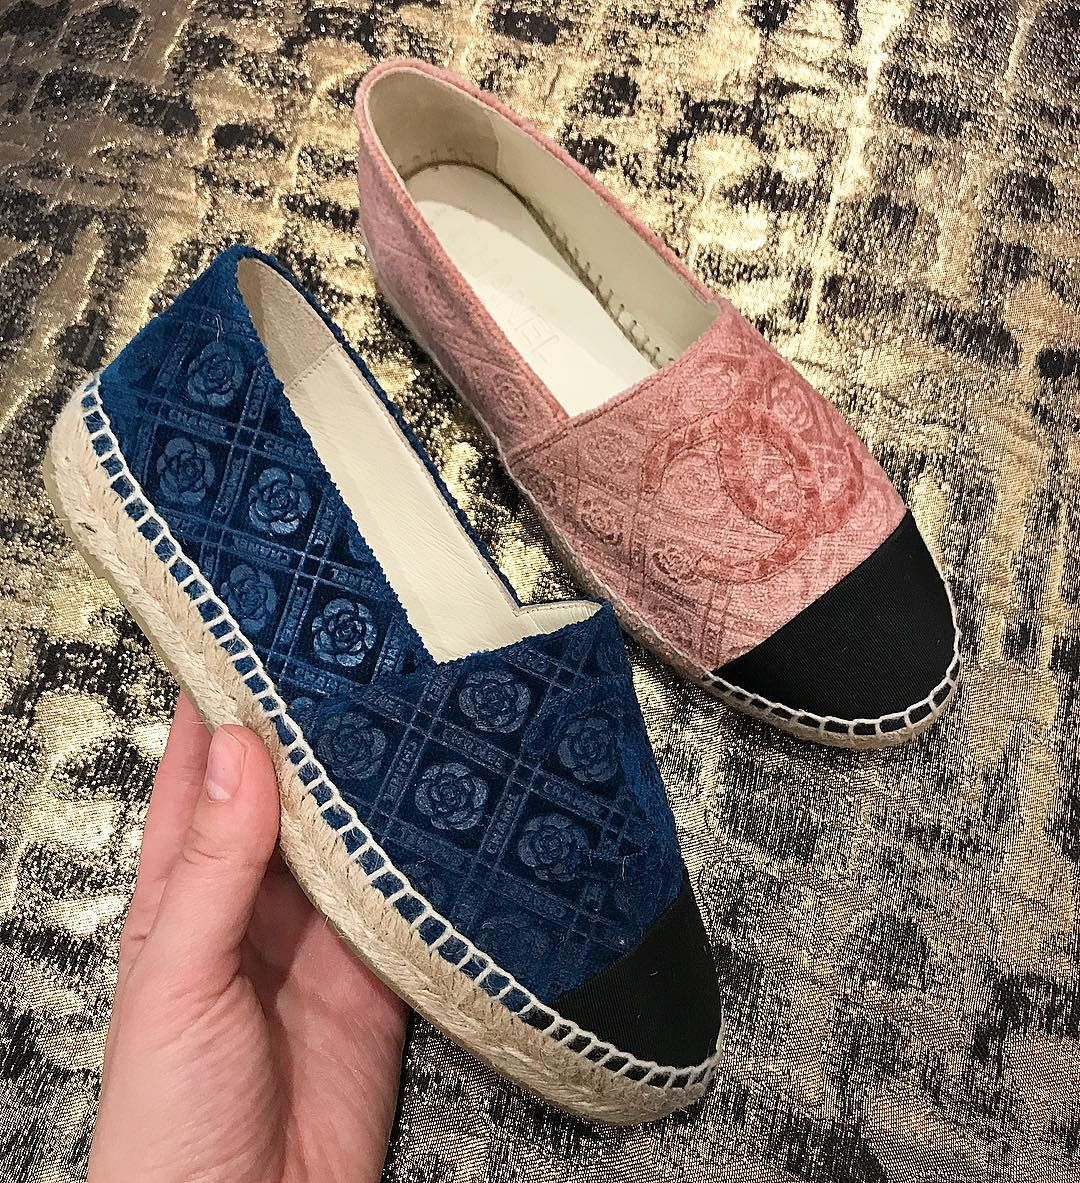 Chanel espadrilles for pre fall 2017 collection